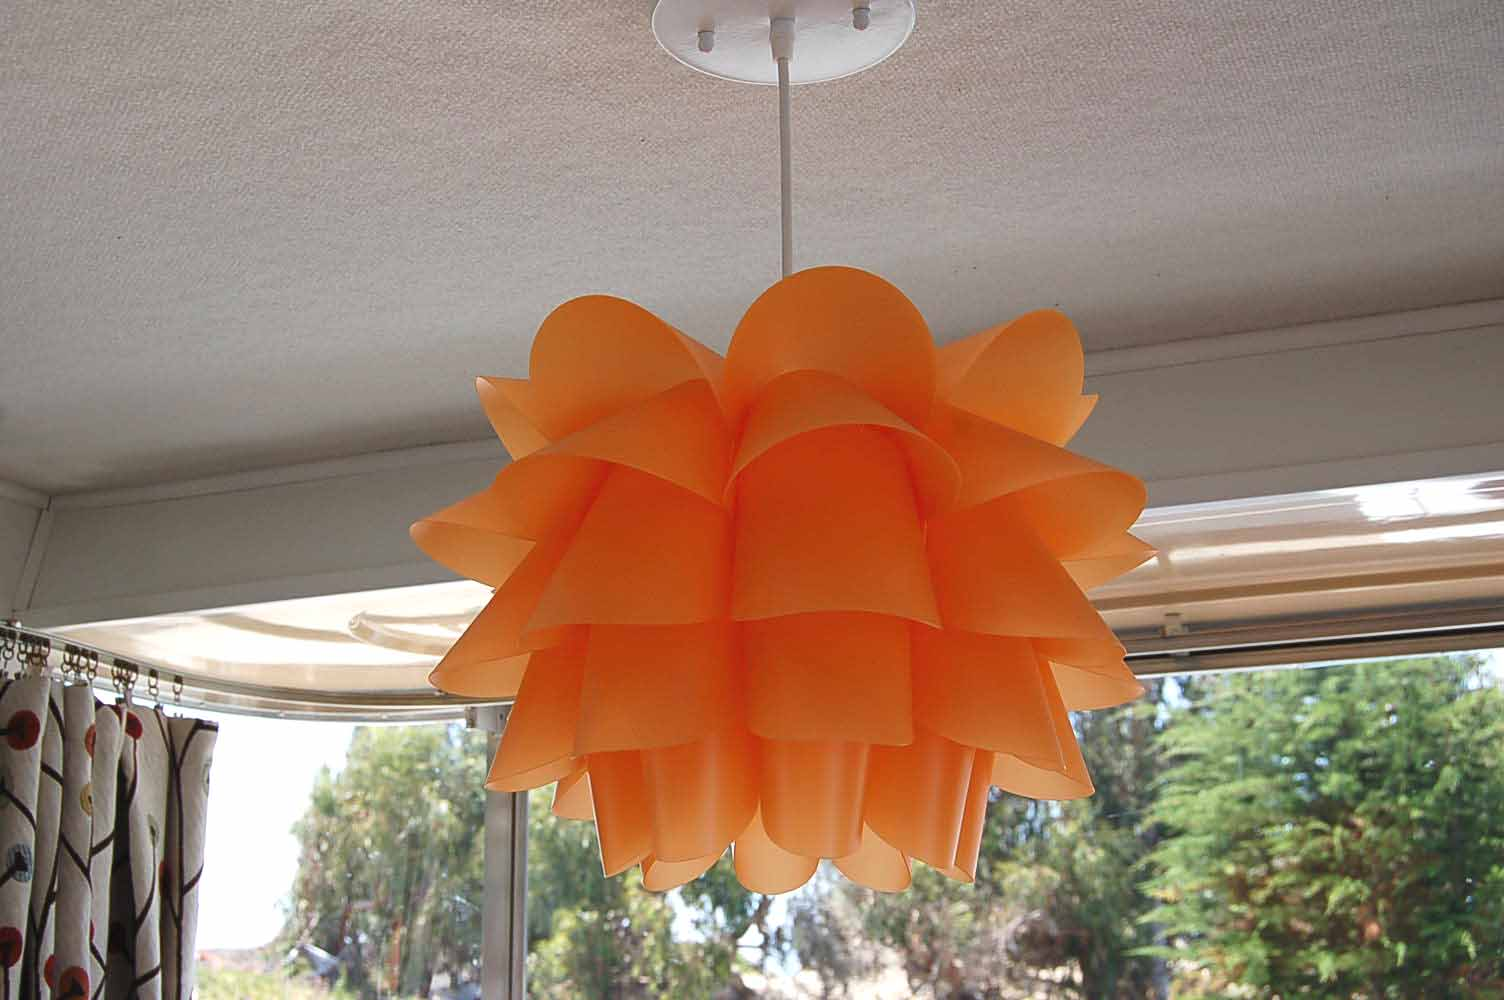 Vintage holiday house trailer pictures and history from oldtrailer awesome orange plastic ruffled ceiling light fixture 24ft vintage 1961 holiday house trailer aloadofball Choice Image